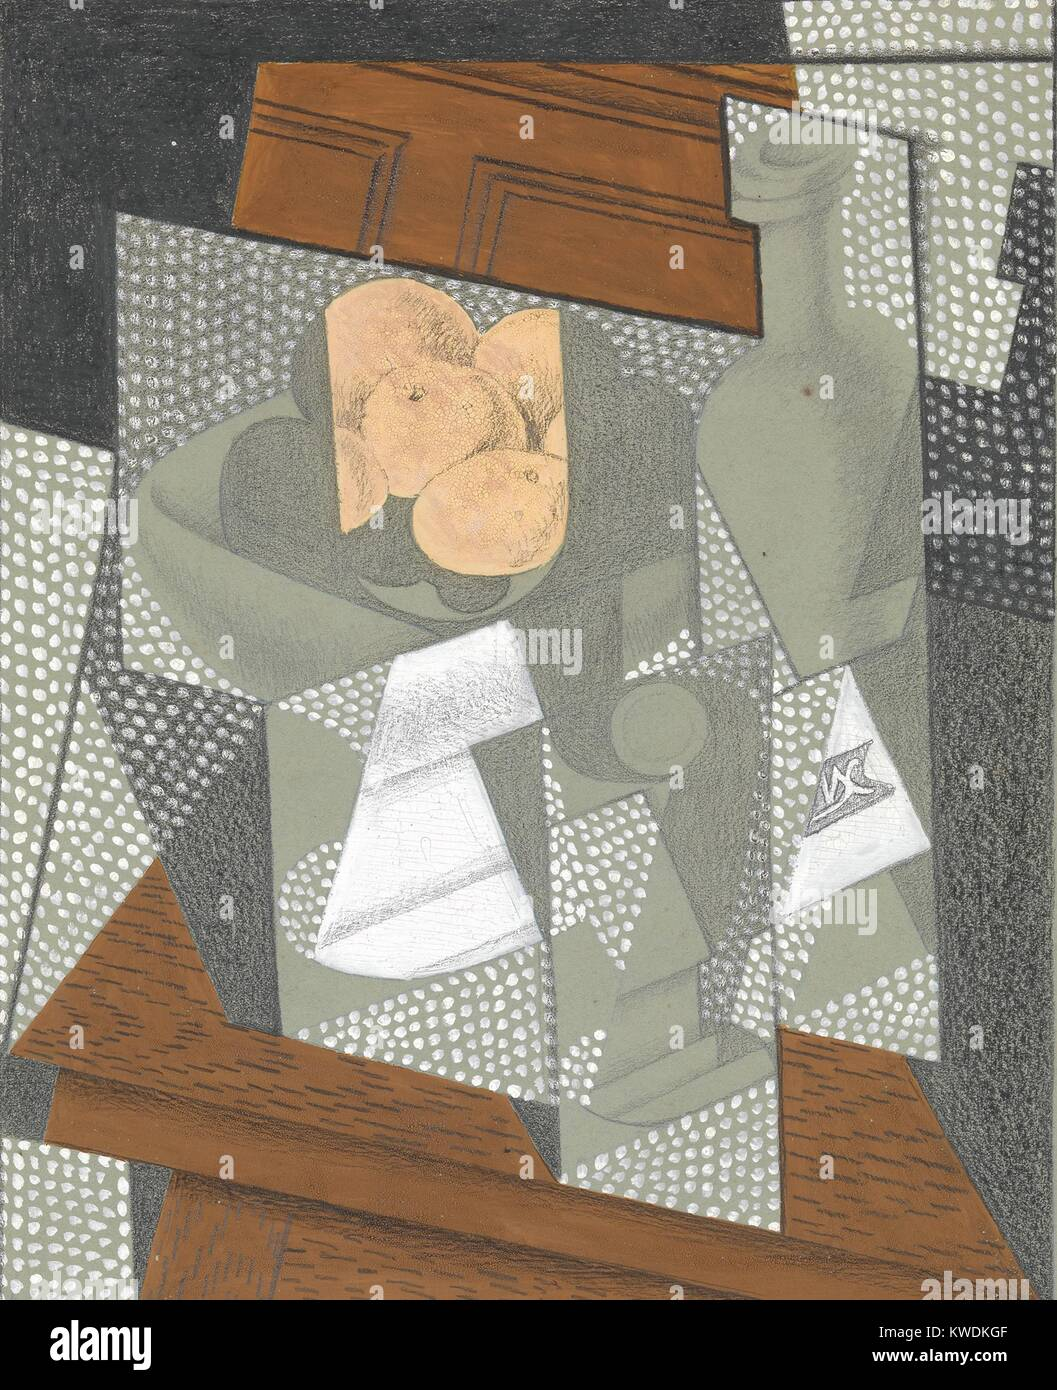 THE FRUIT BOWL, by Juan Gris, 1915-16, Spanish Cubist graphite, wax crayon, gouache drawing. This drawing is one - Stock Image